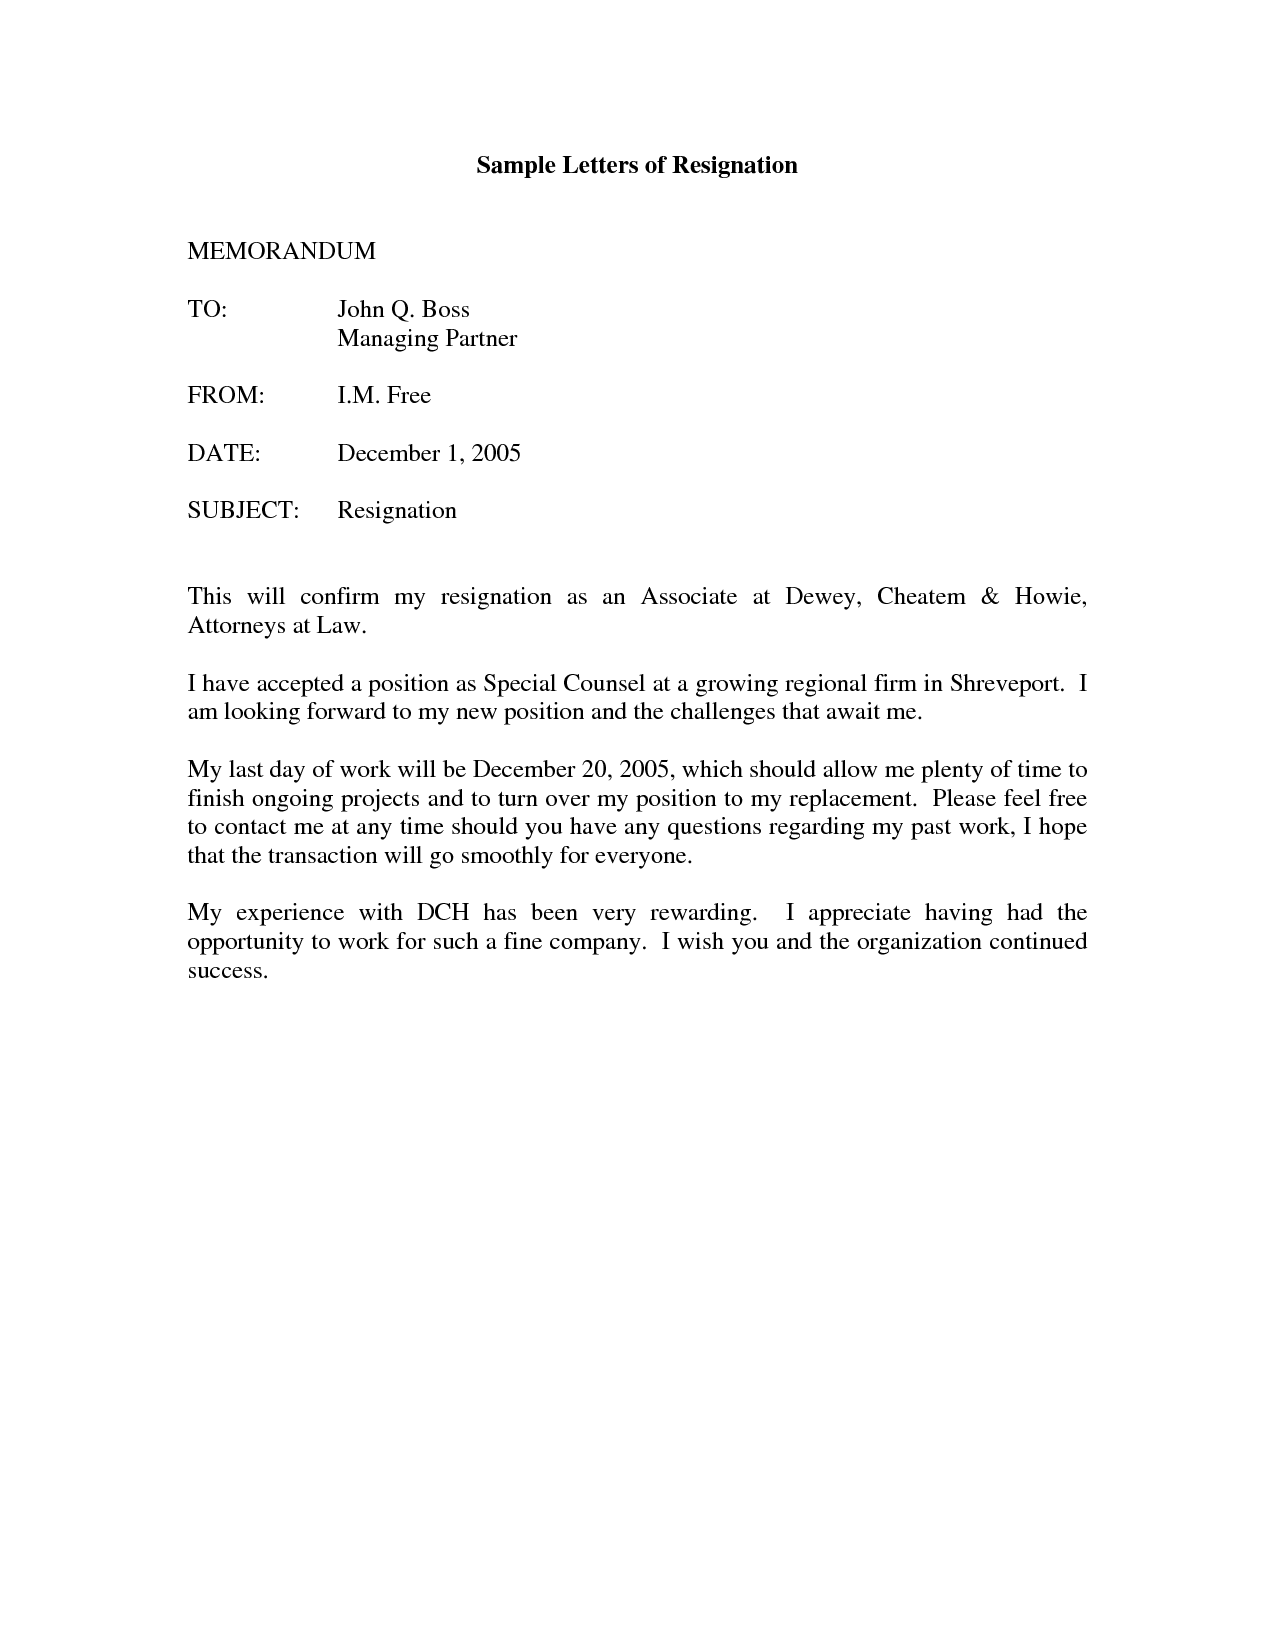 Letter Of Resignation Sample | Printable Sample Letter Of Resignation Form Laywers Template Forms